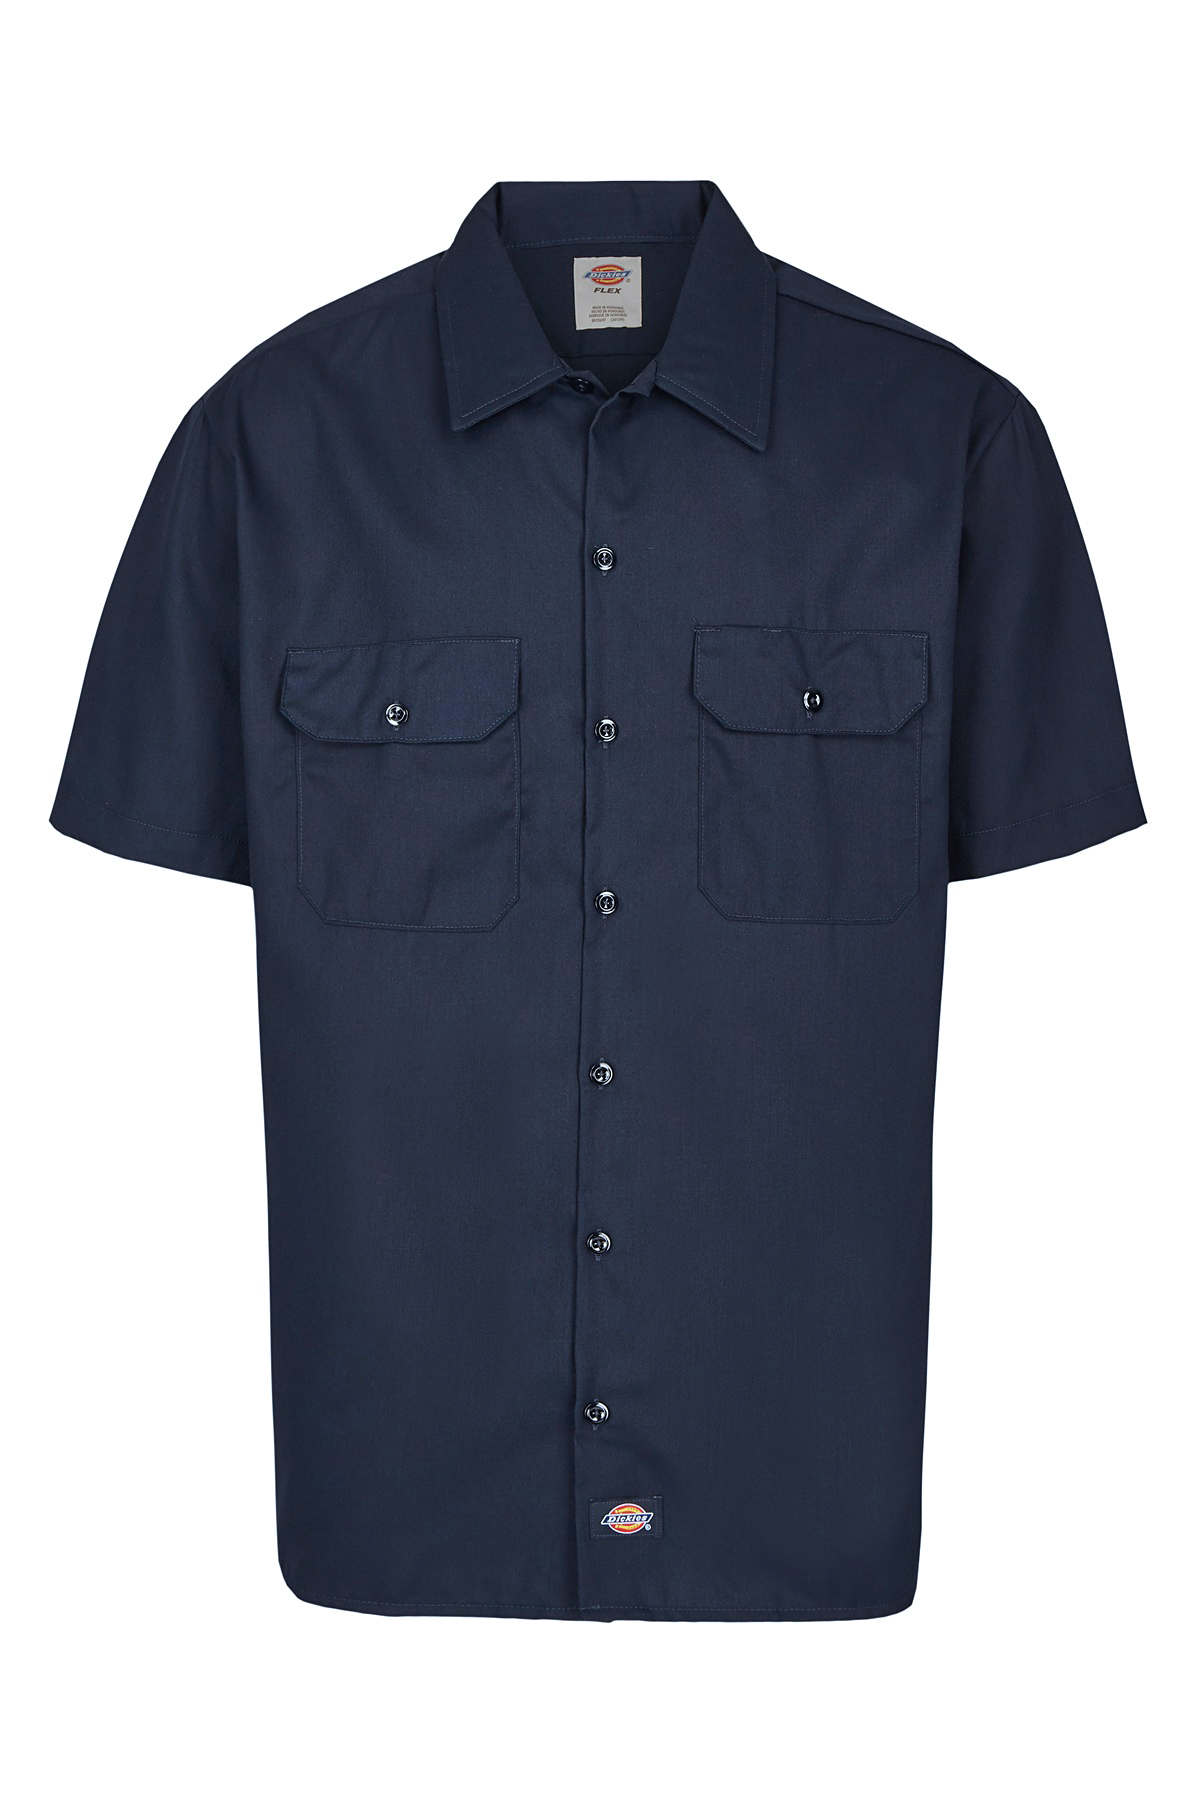 Dickies-NEW-Mens-Button-Down-Twill-Flex-Wrinkle-Resistant-Industrial-Work-Shirt thumbnail 8